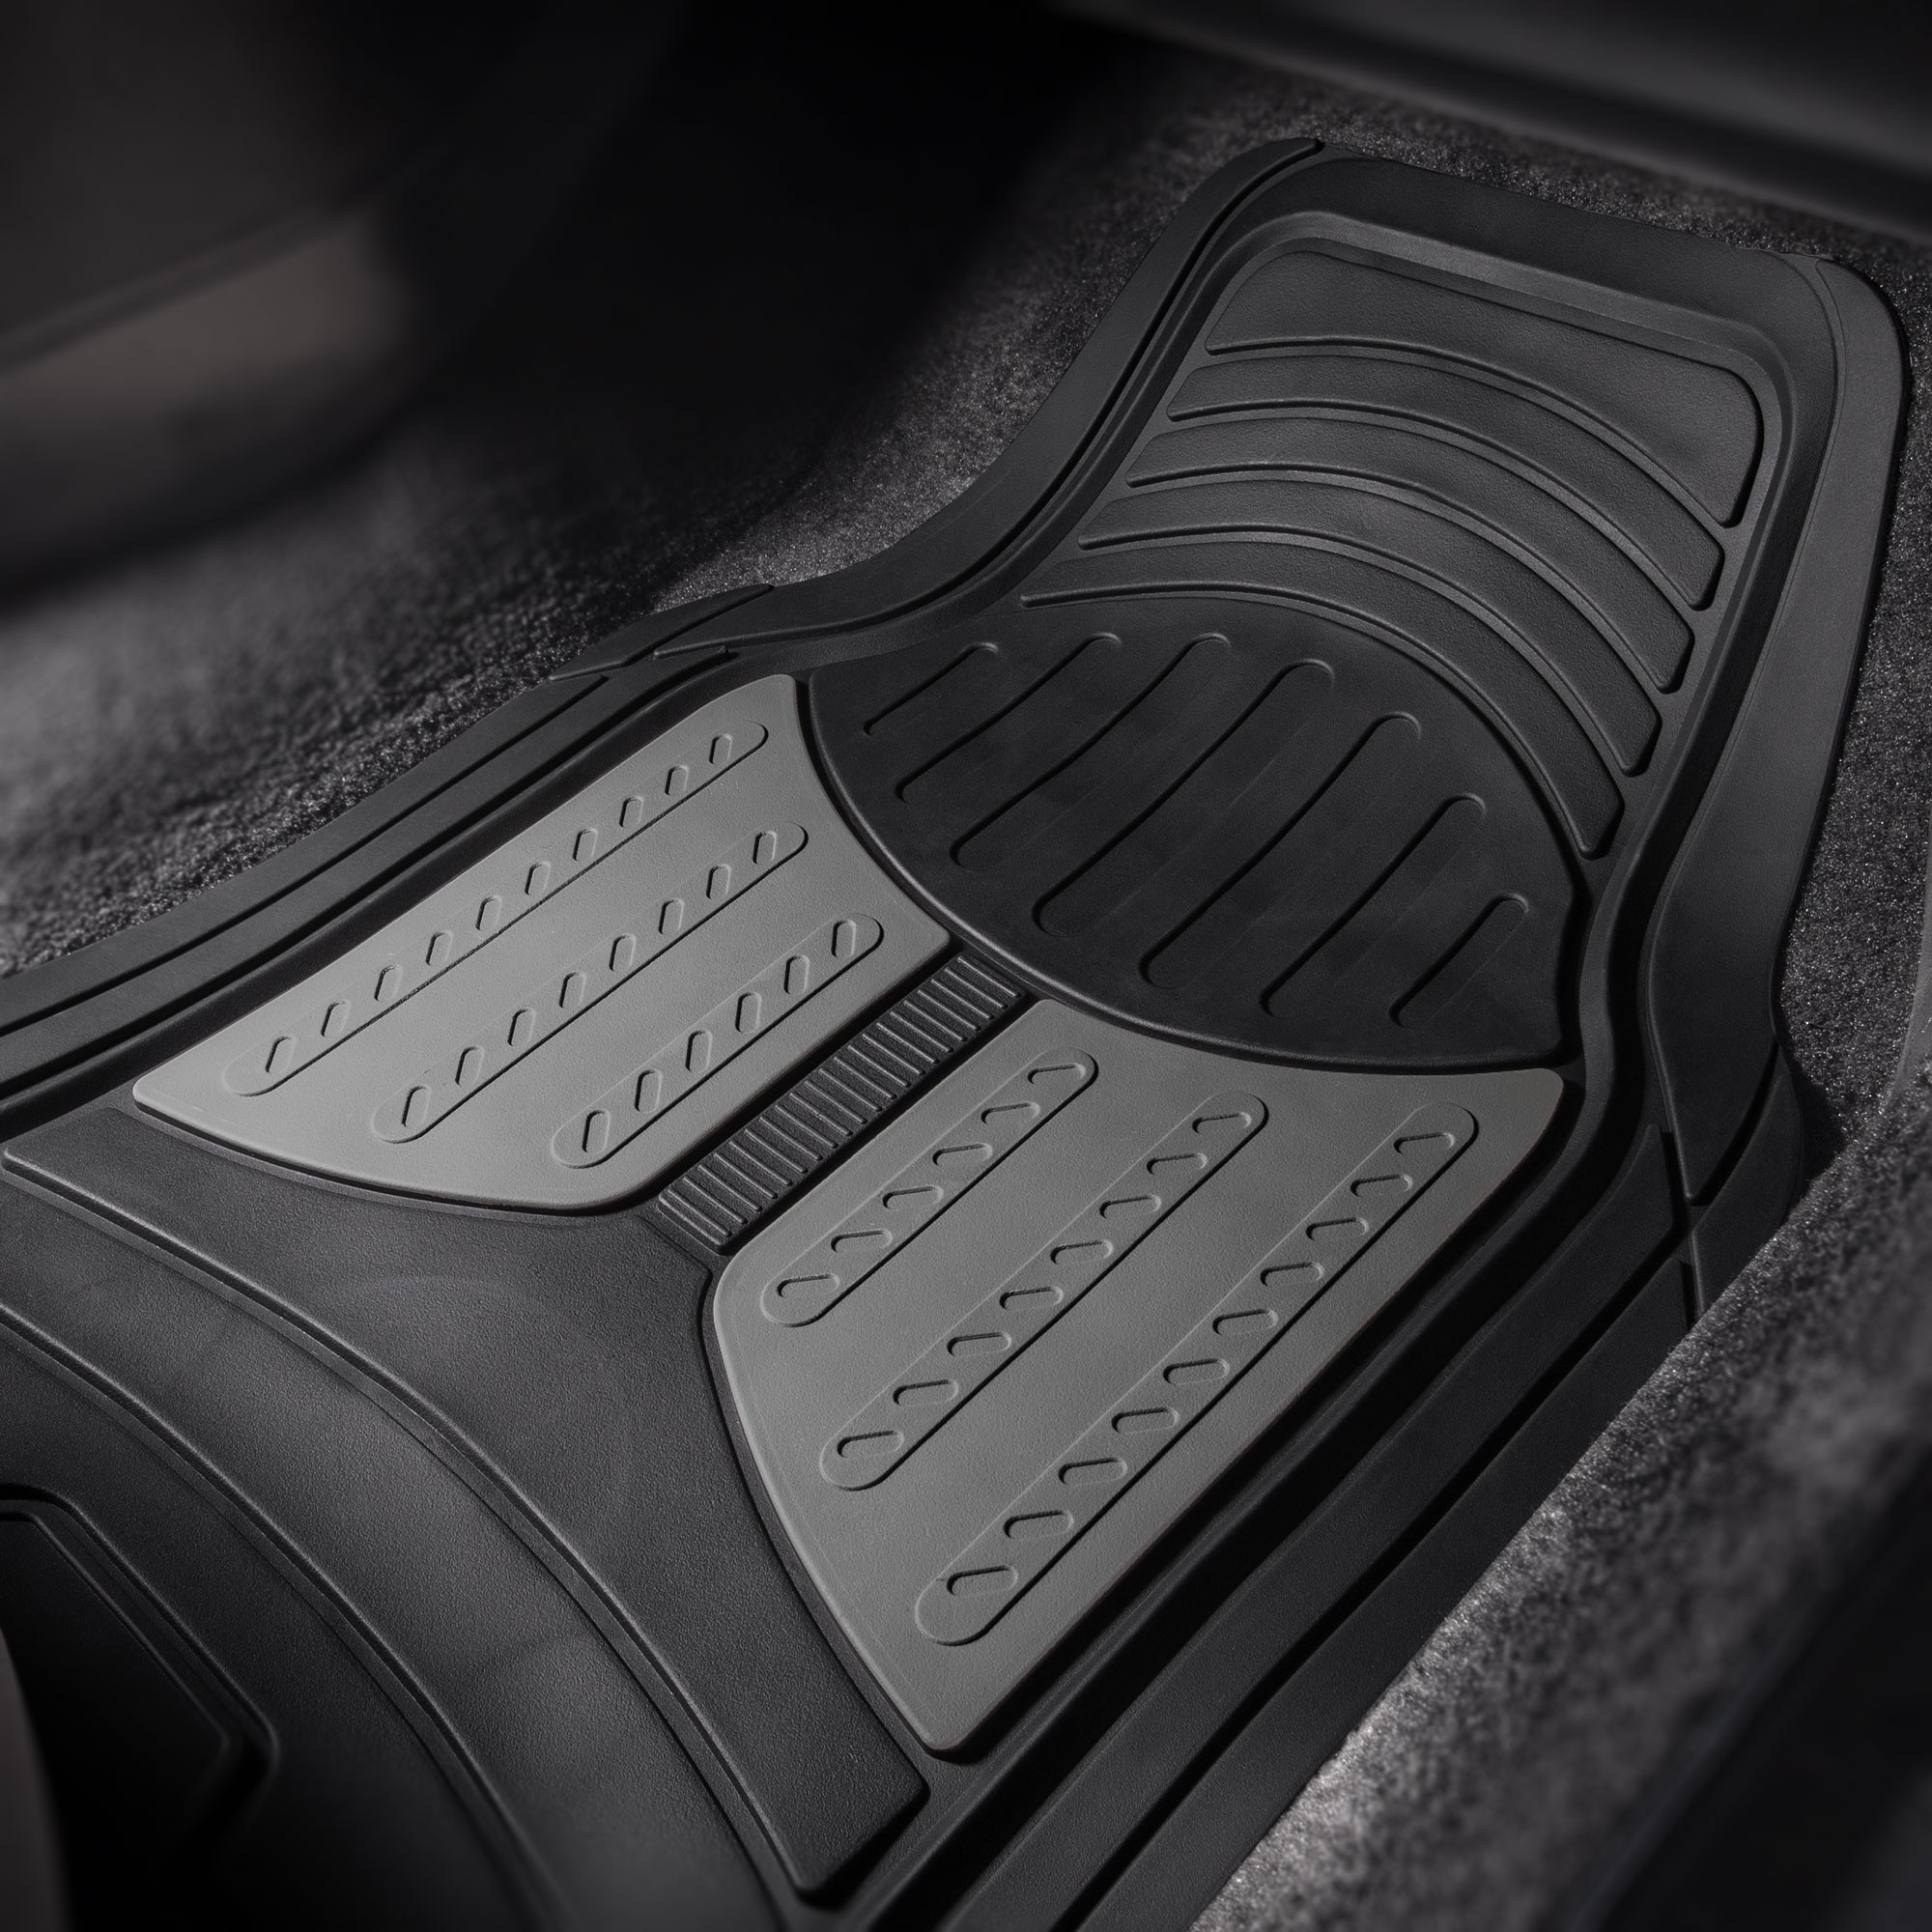 Car-Floor-Mats-for-All-Weather-Rubber-2-Tone-Design-4pc-Set-Heavy-Duty thumbnail 23